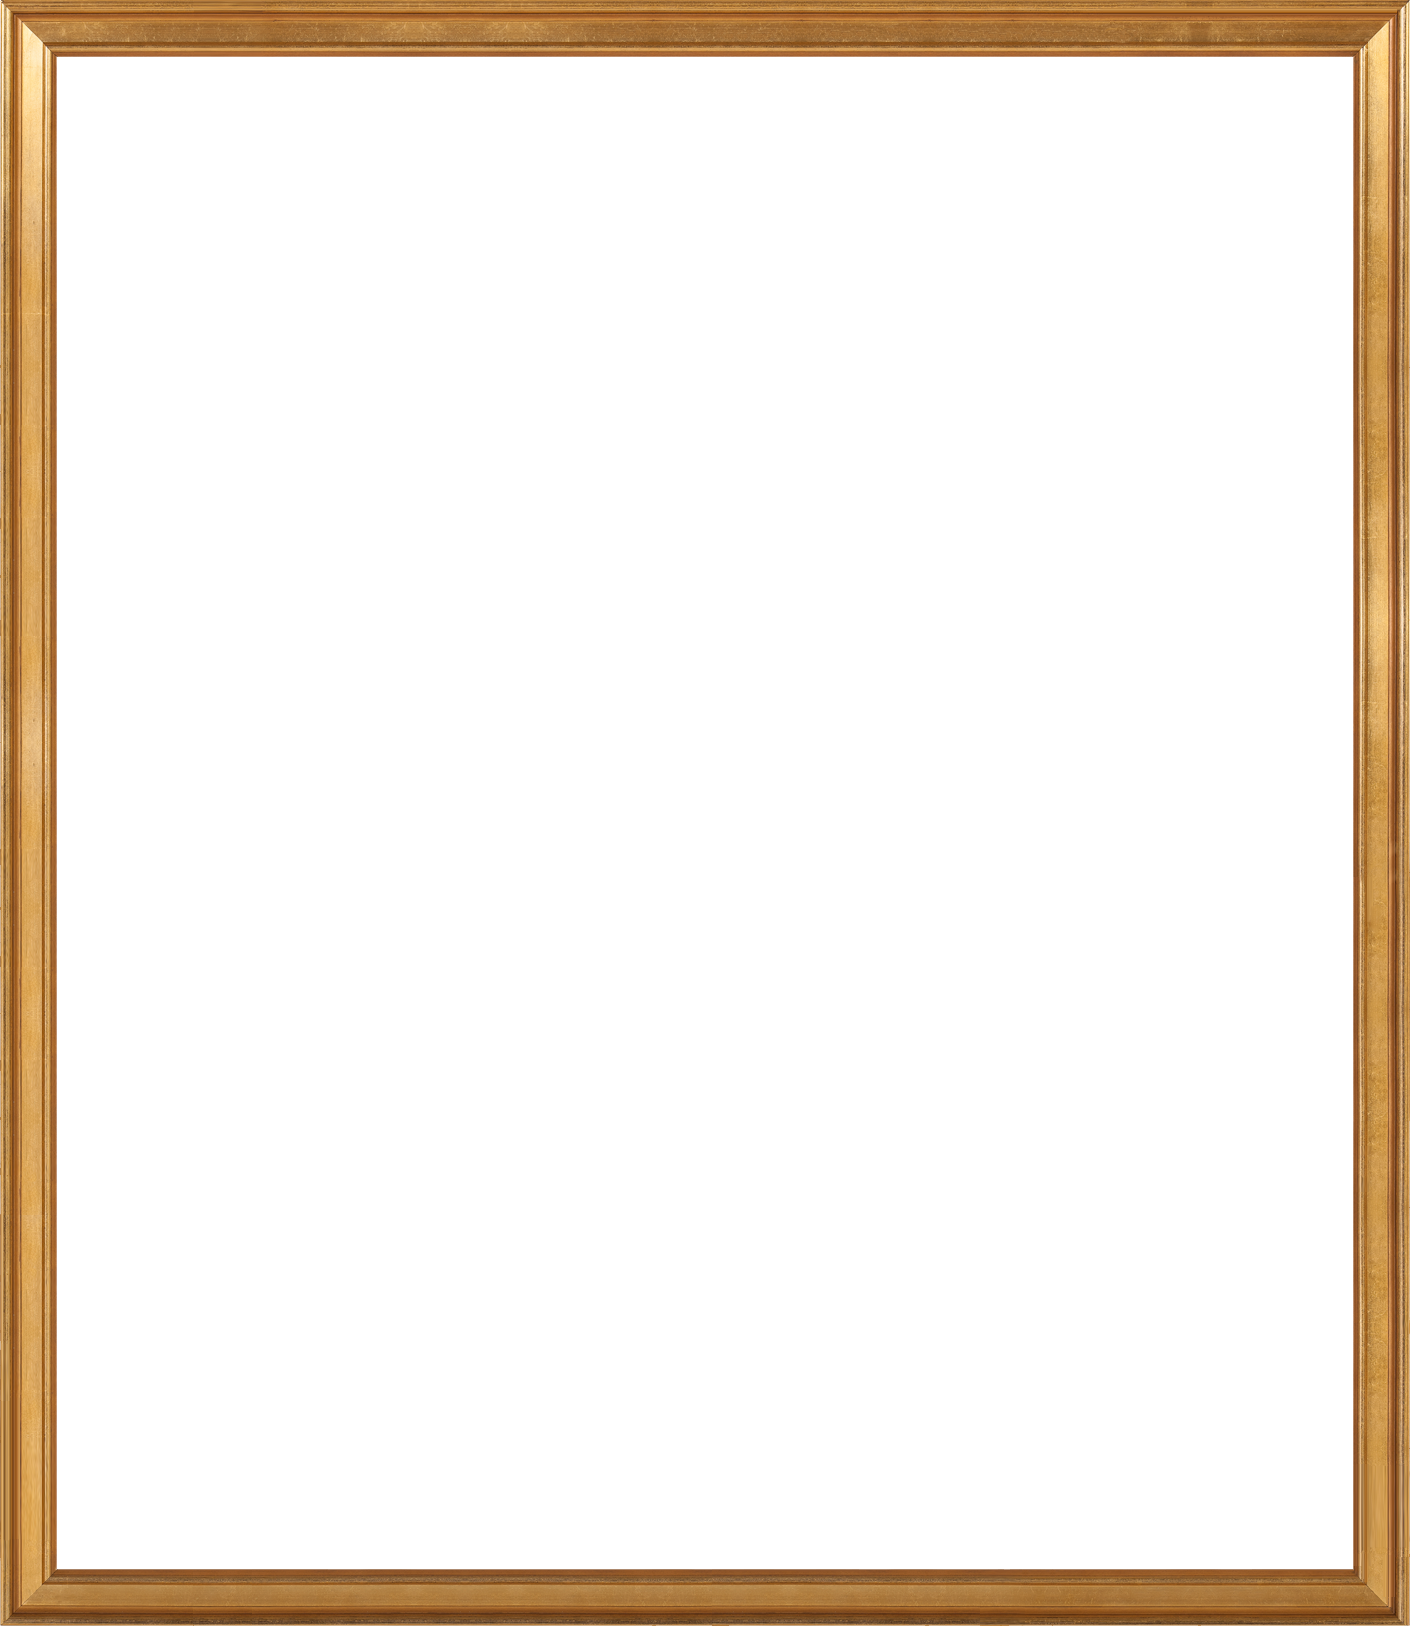 Gold HD PNG - 95802